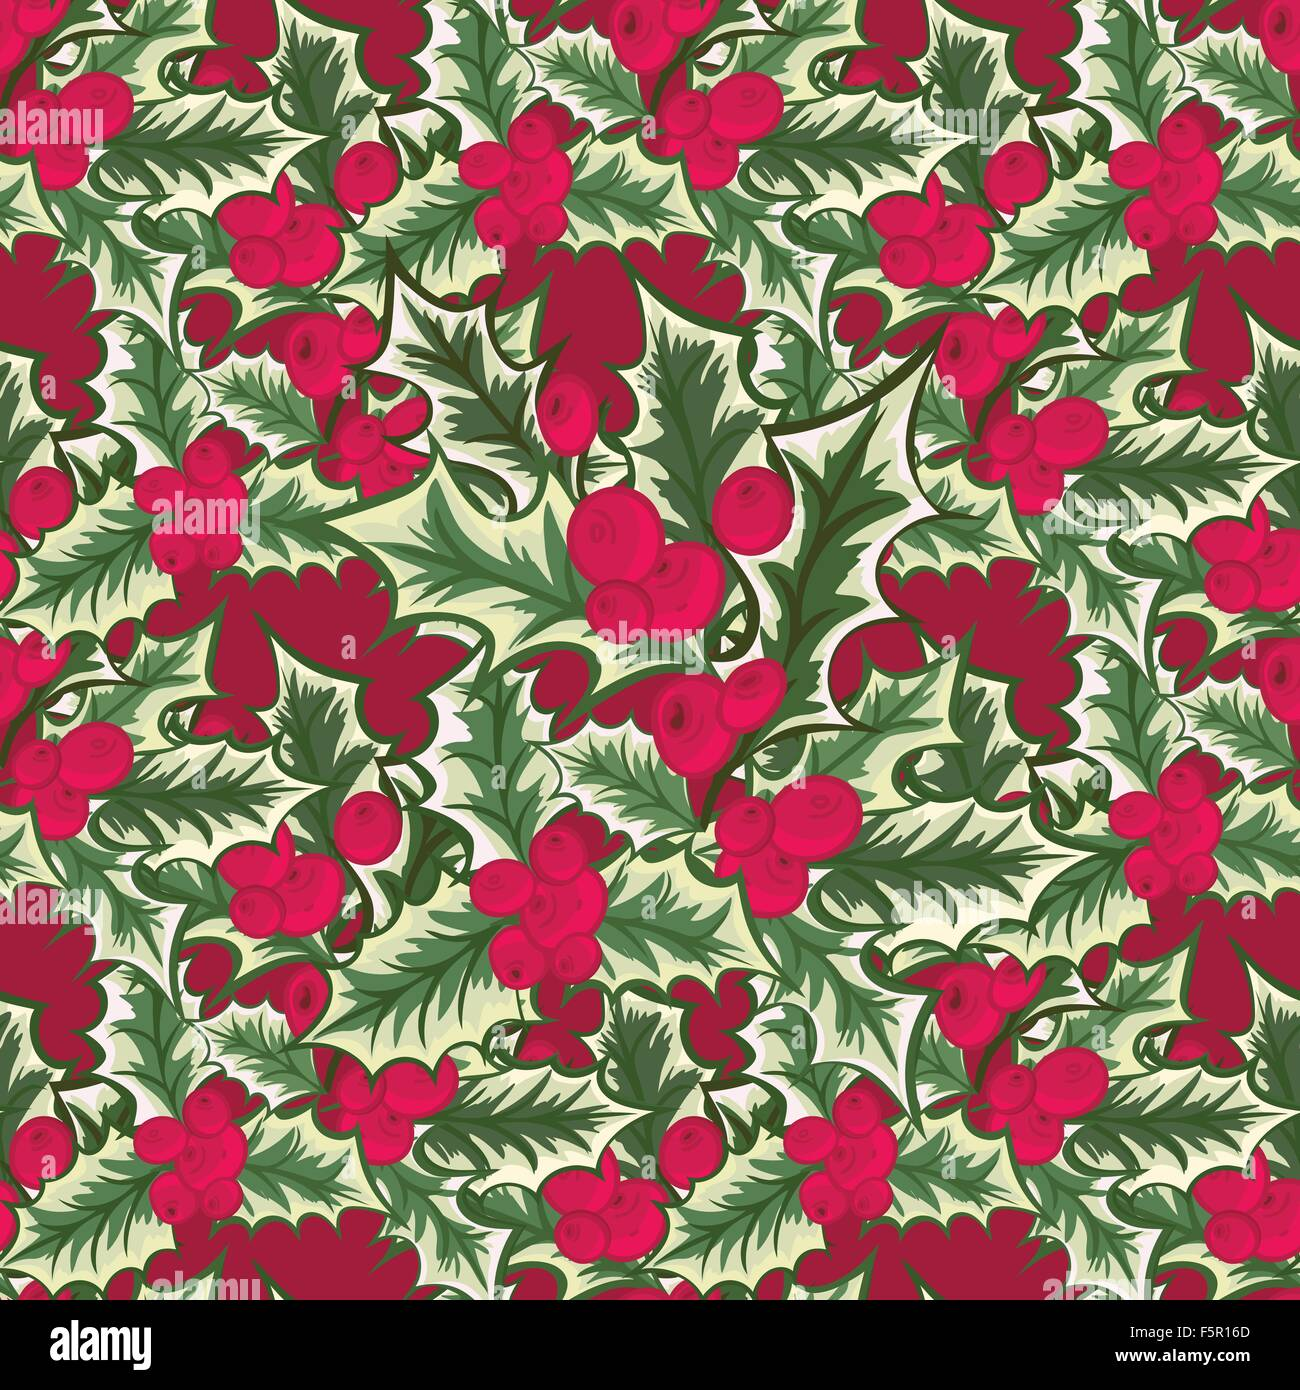 Abstract texture with holly. Seamless pattern with Christmas flower ...